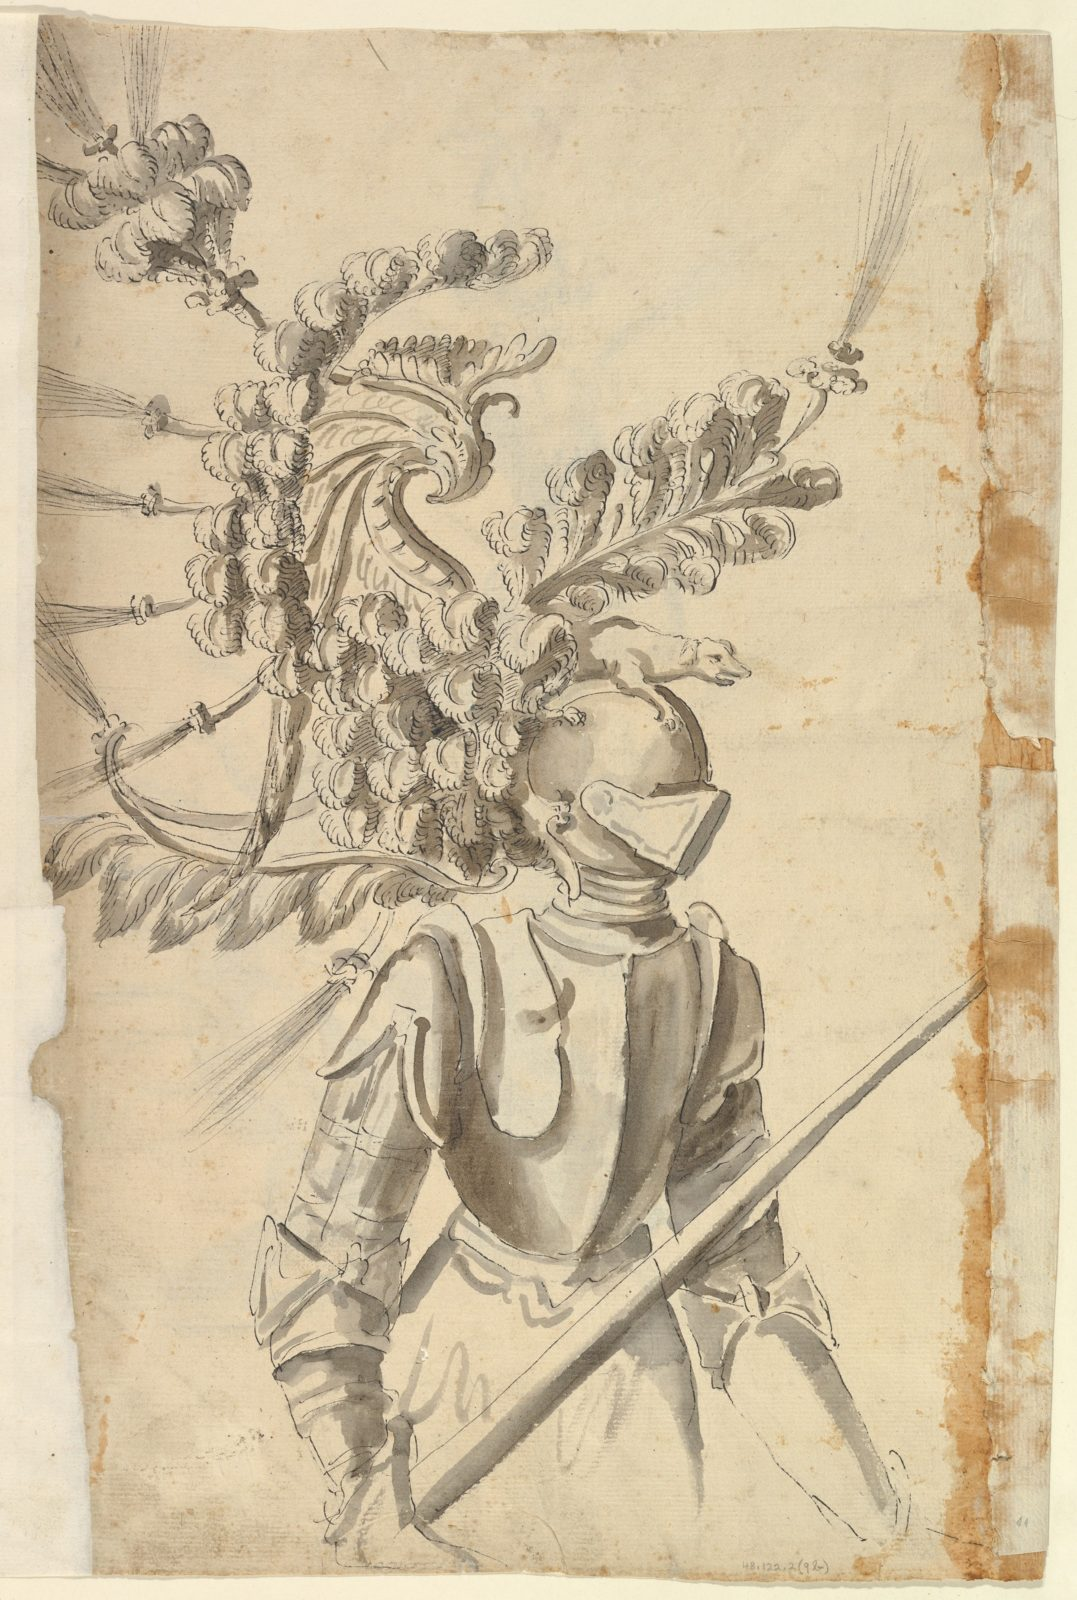 Design for an Armor with Tournament Headdress